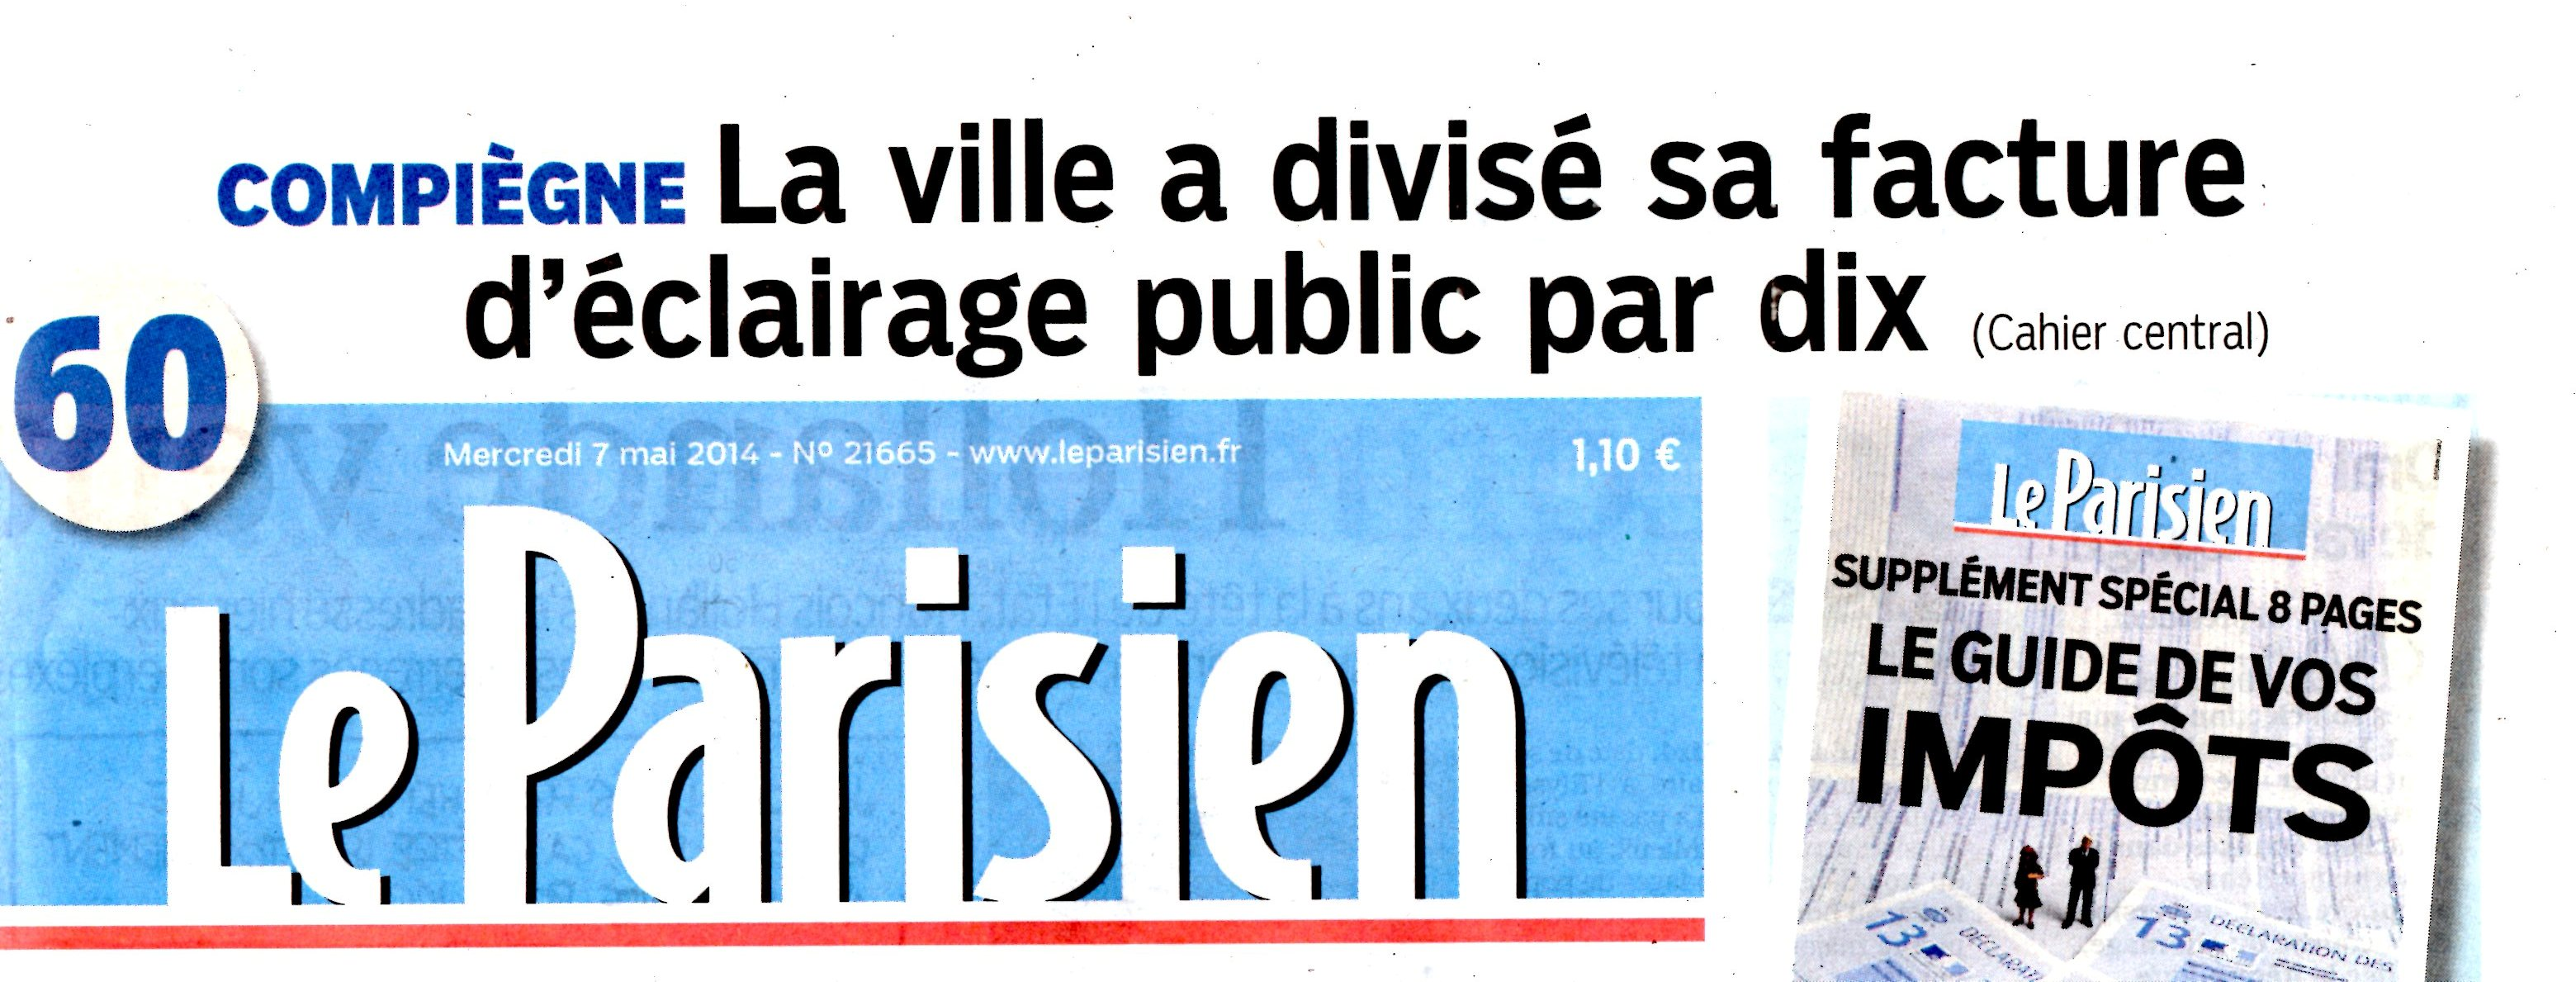 LE PARISIEN  BETTY 7 MAI 2014001